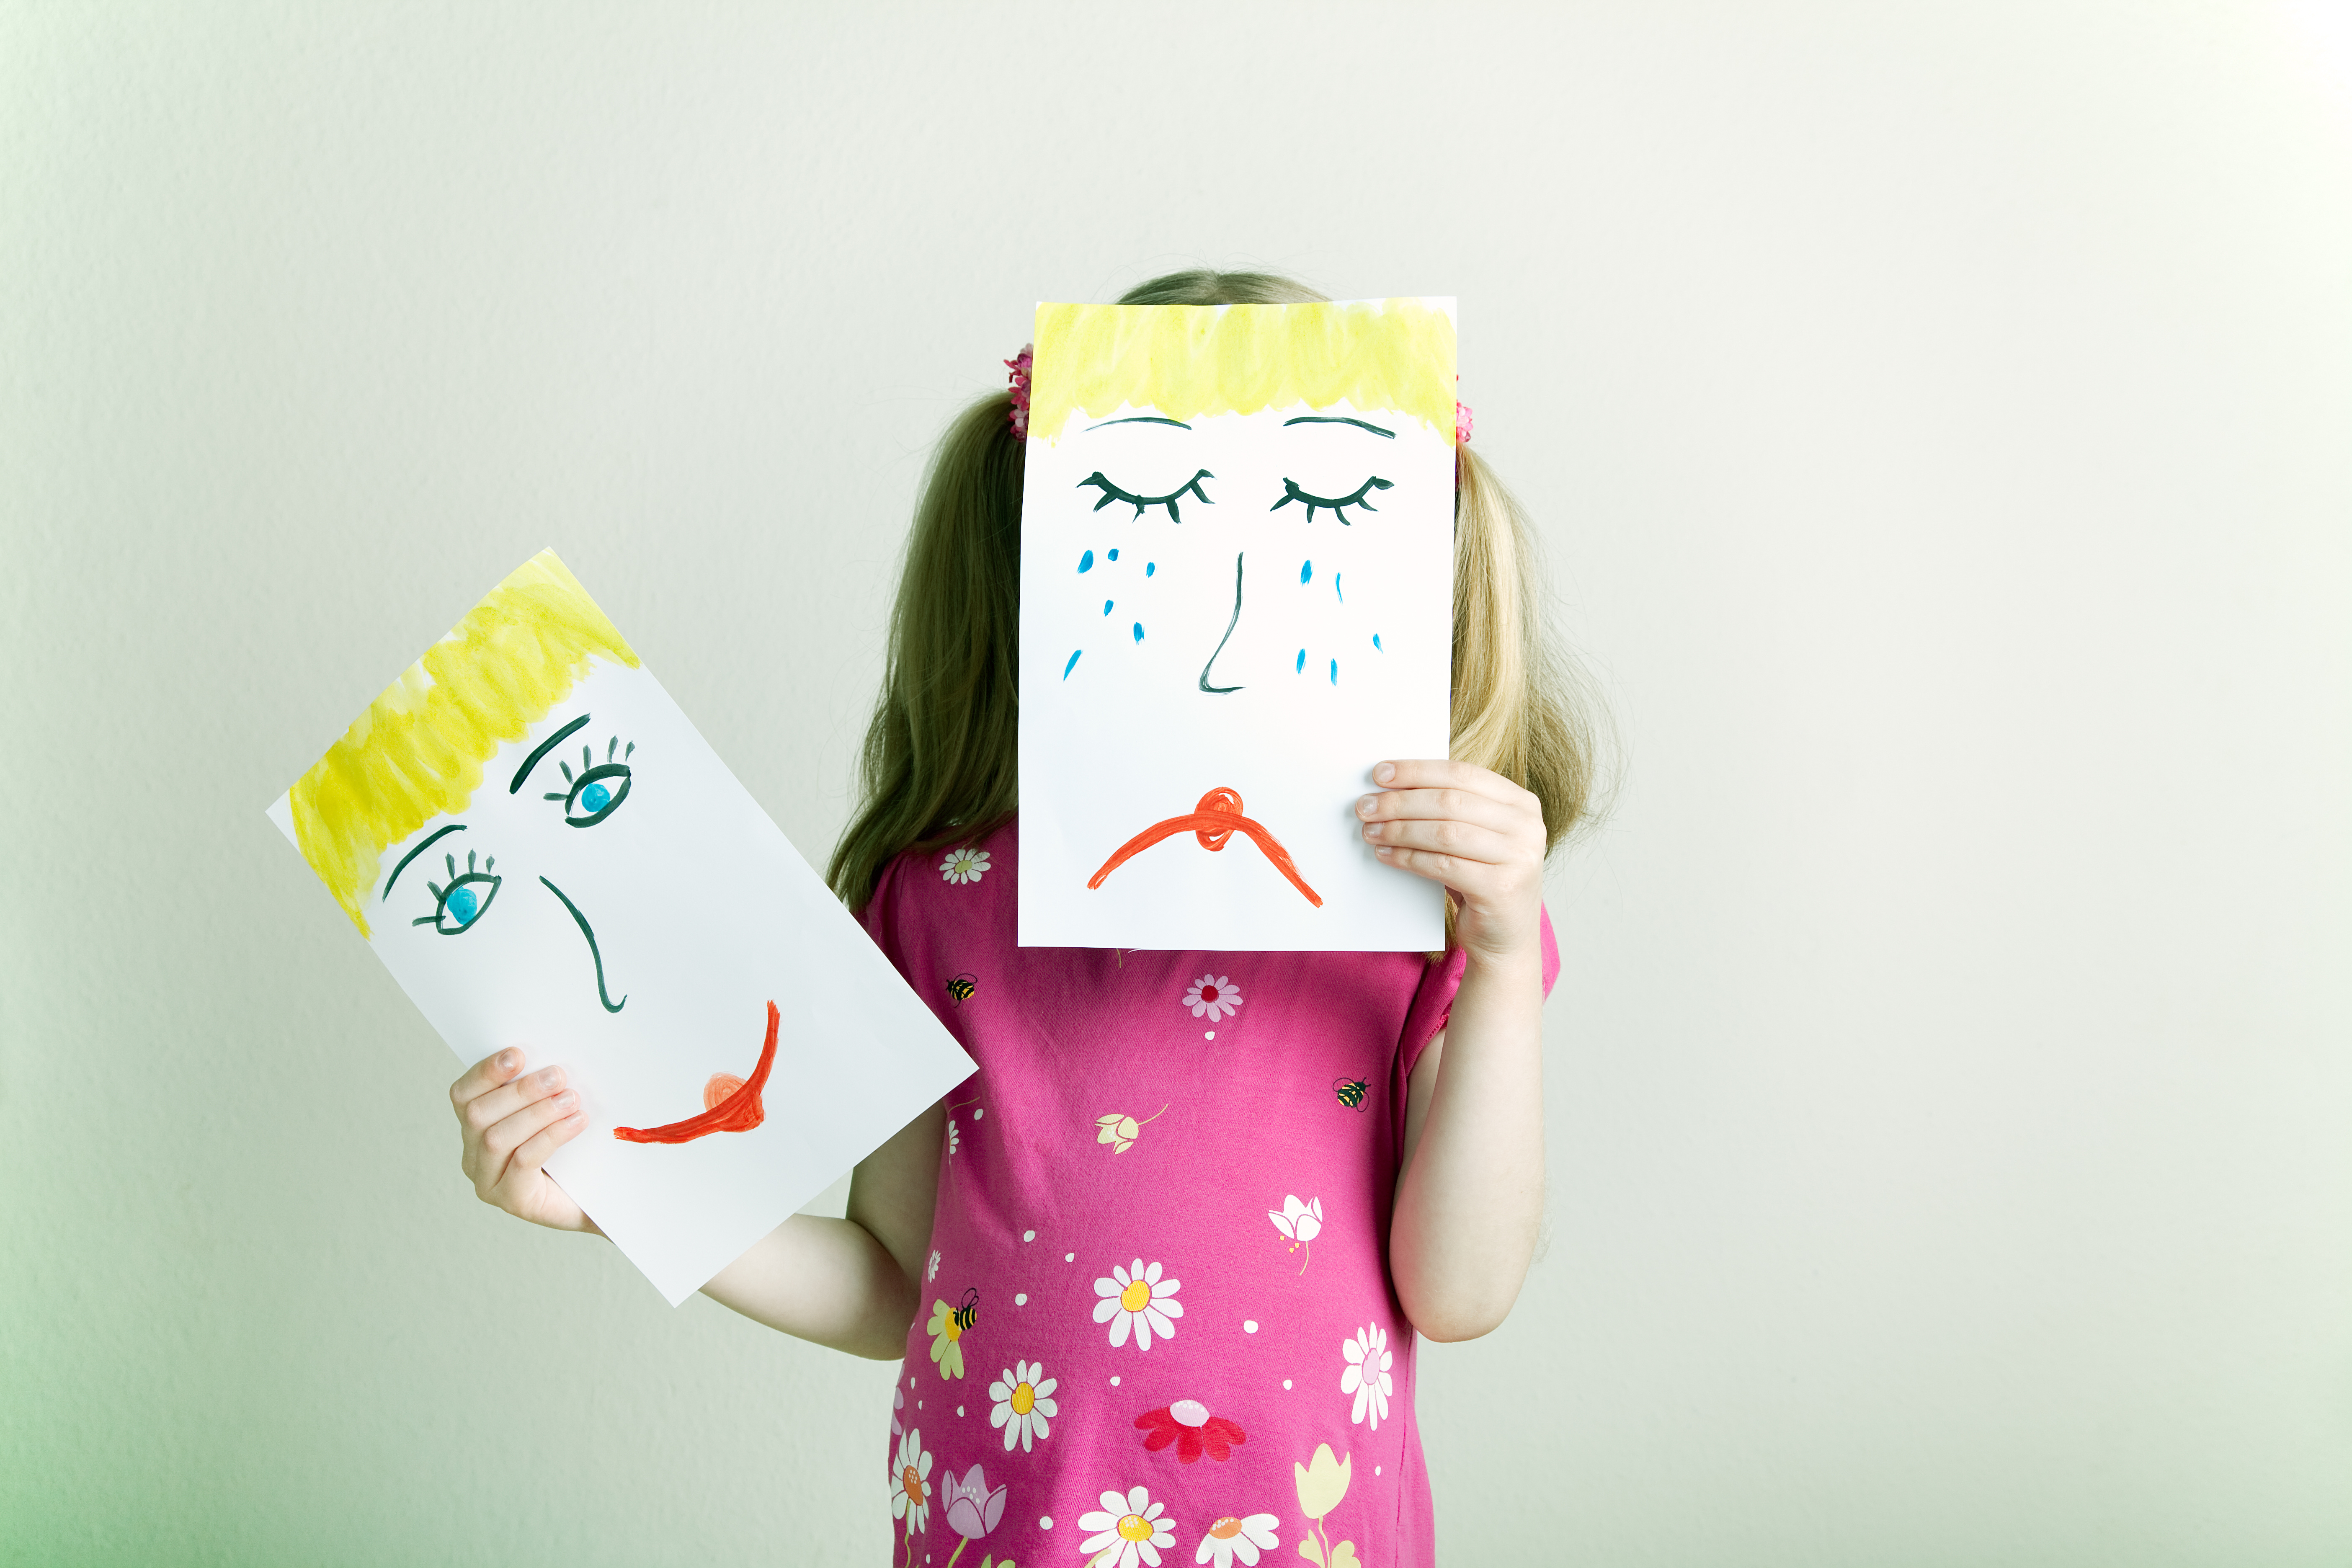 Child in pink floral shirt holding a drawing of a crying face in front of their own face and a drawing of a happy face in their free hand.